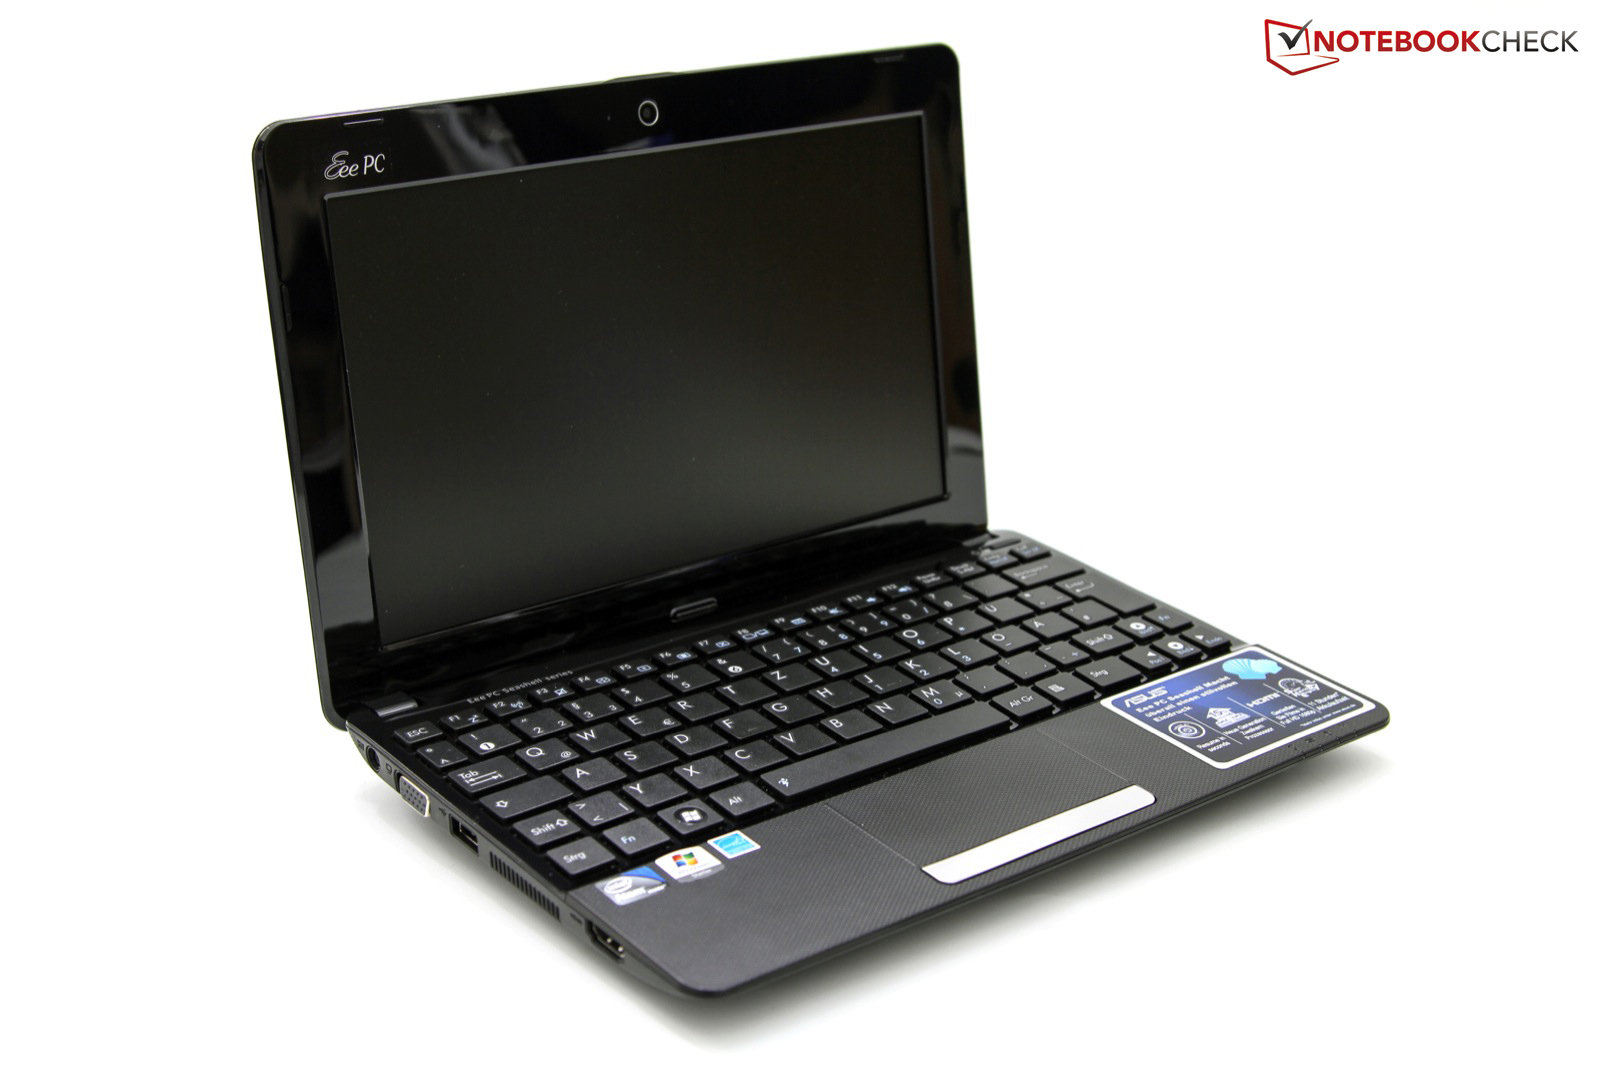 Test Asus Eee Pc 1011cx Netbook Notebookcheck Com Tests